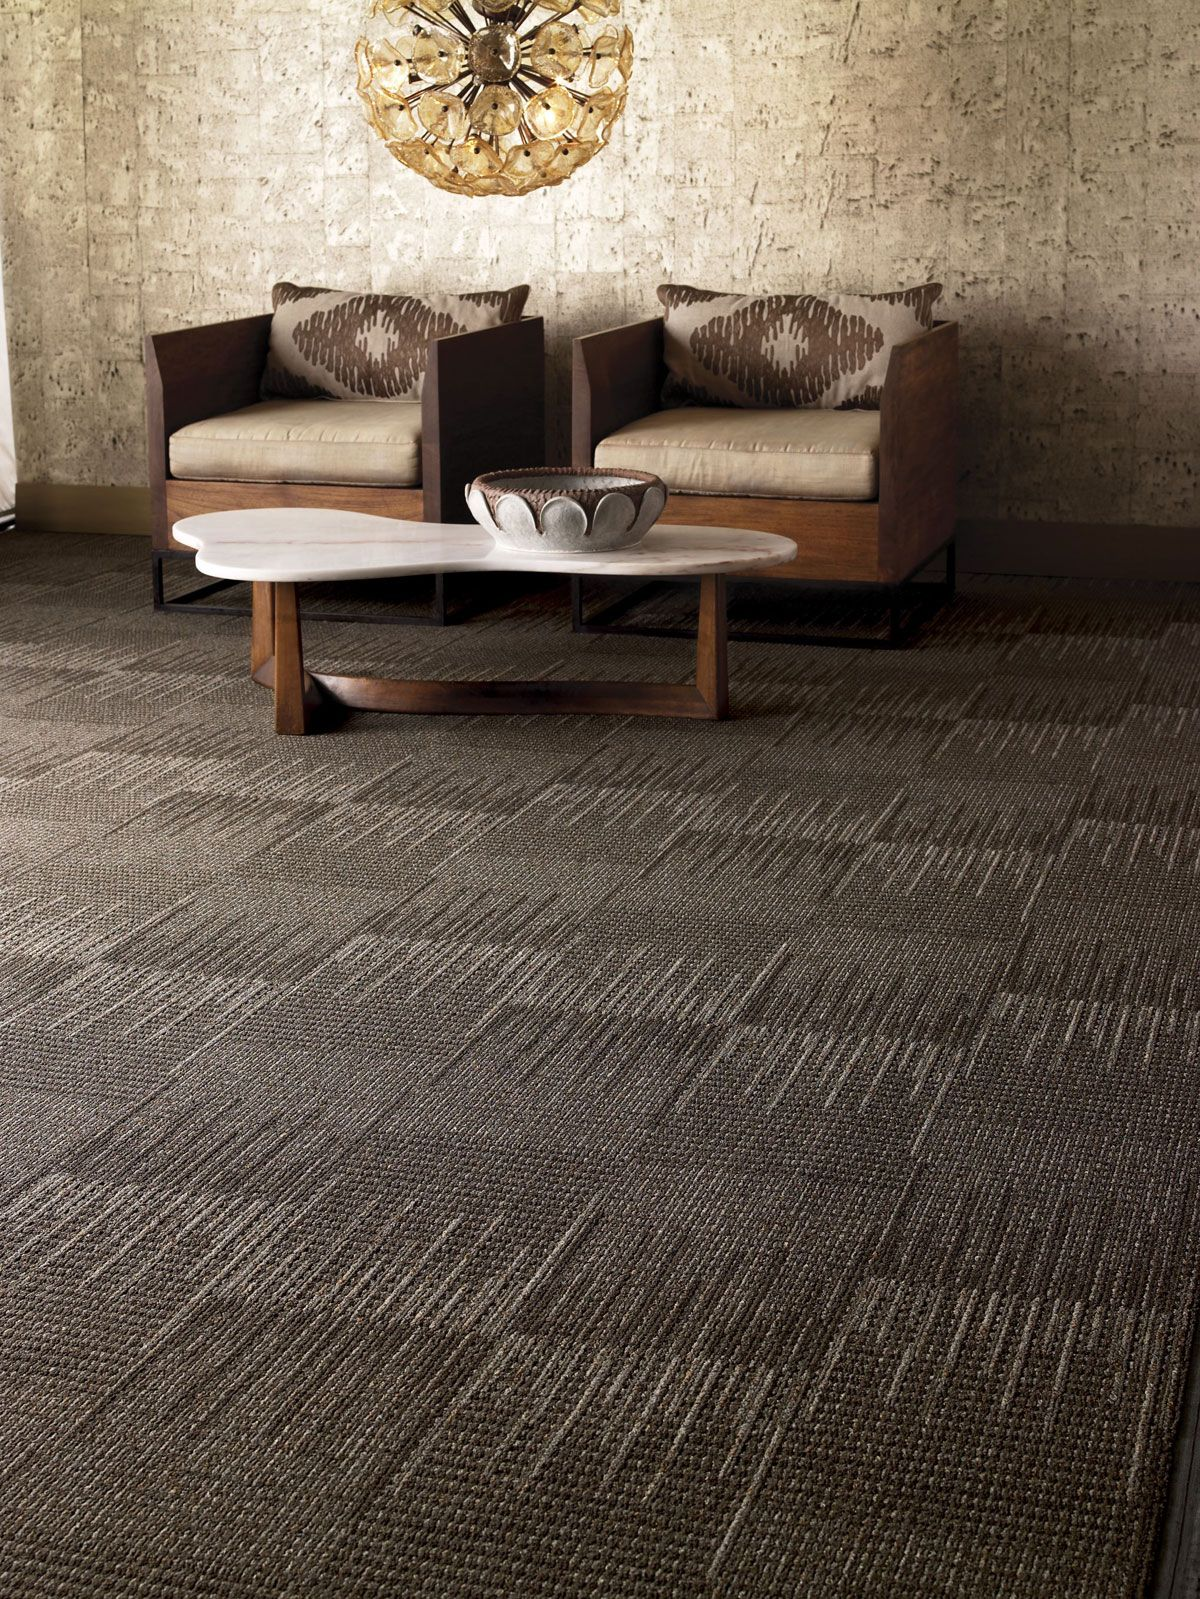 Grey Carpet Tiles Carpet Tiles Design Carpet Tiles Living Room Tiles